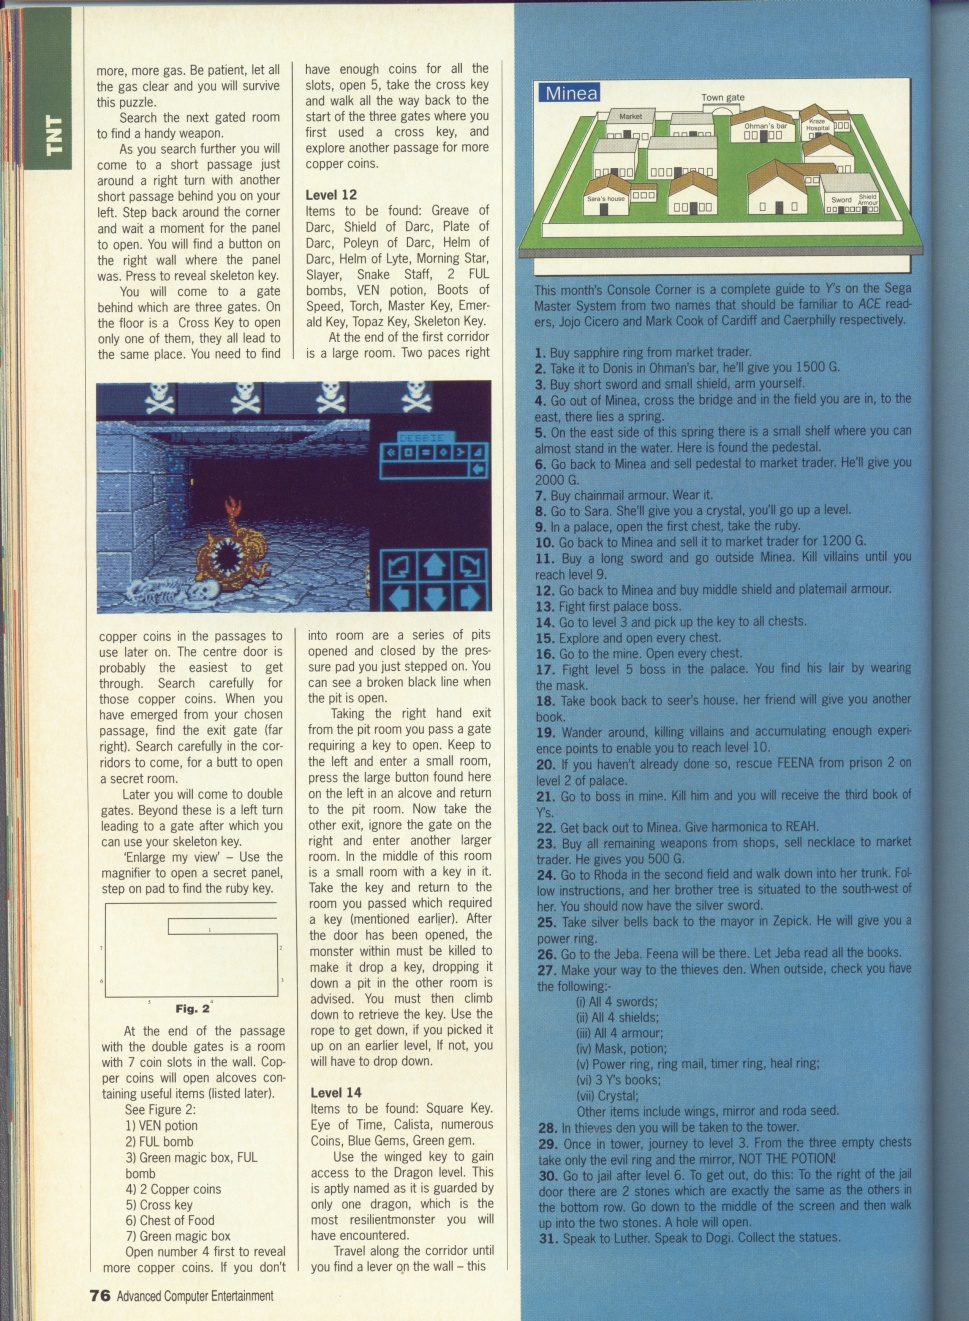 Dungeon Master Guide published in British magazine 'Advanced Computer Entertainment', Issue #32 May 1990, Page 76